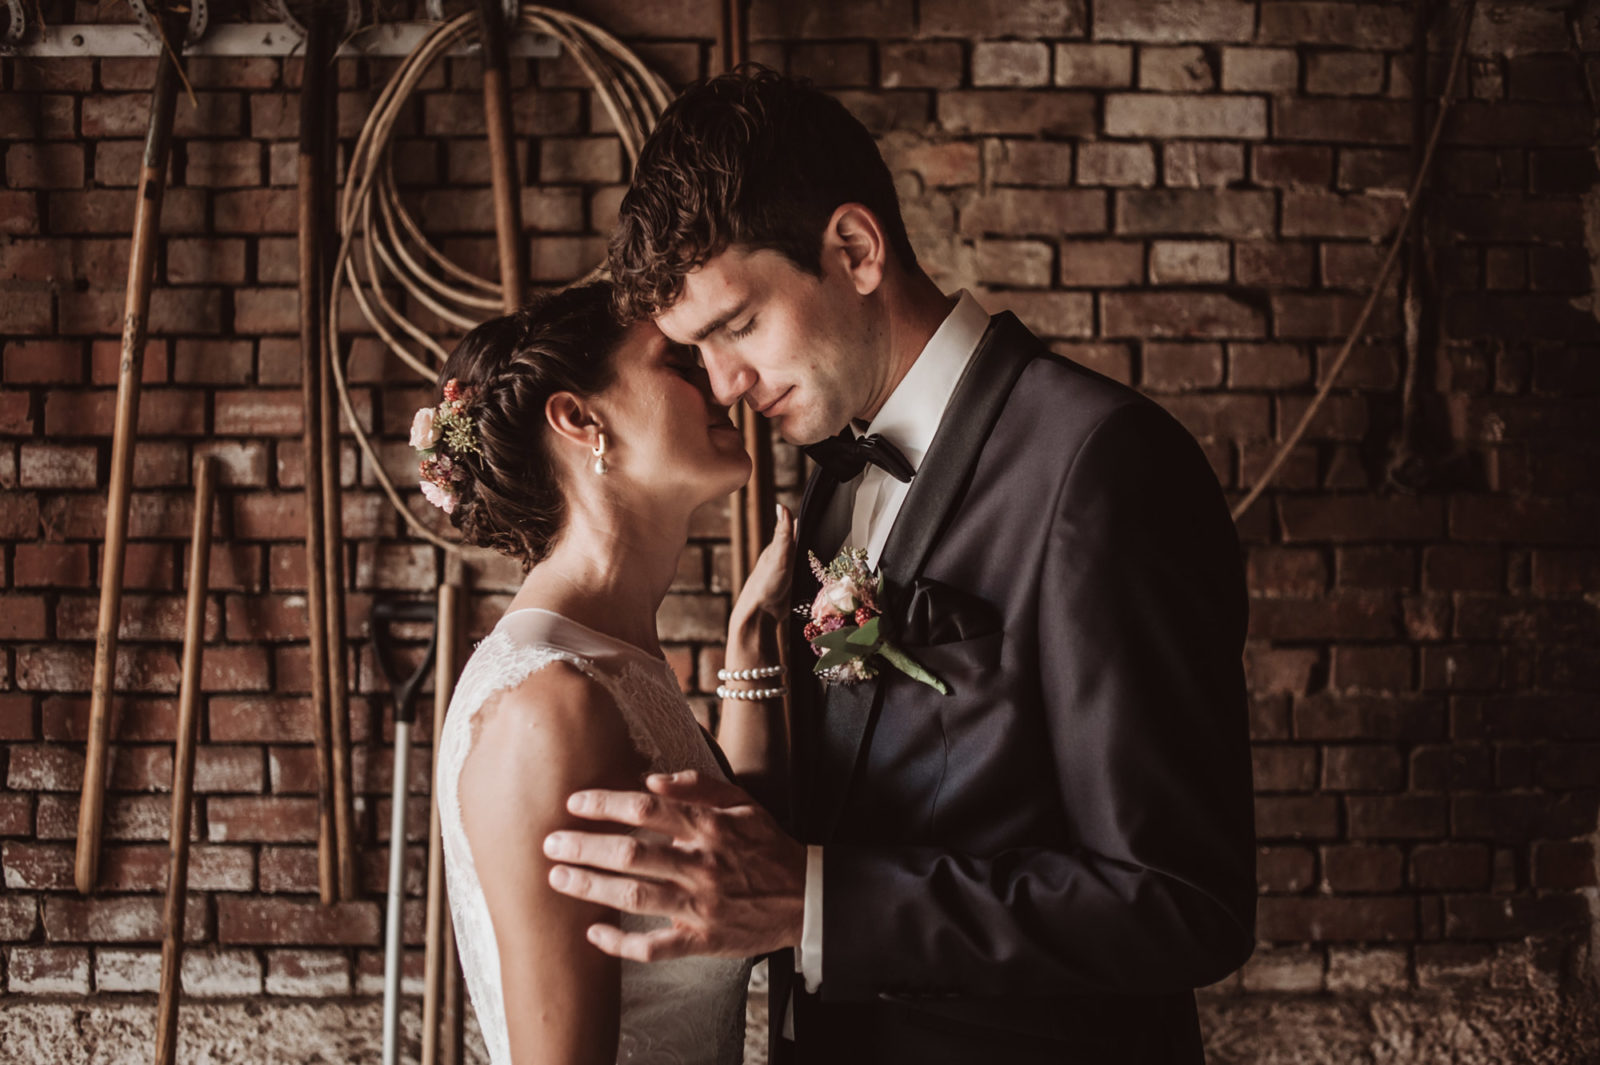 Kerstin Maier Photography: Weddings / Hochzeiten